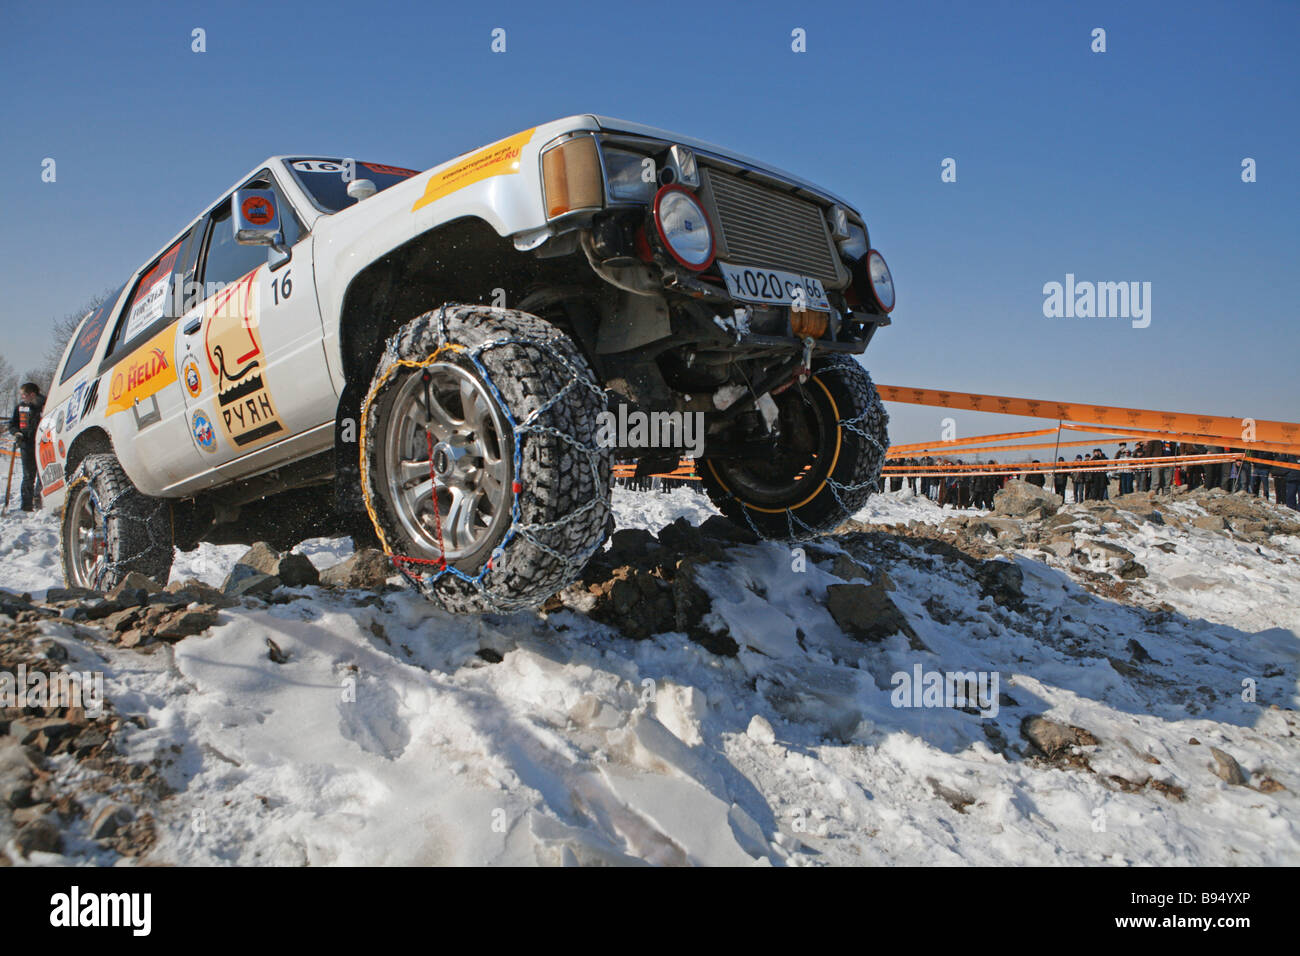 Expedition Trophy 2006 transcontinental offroad car race - Stock Image